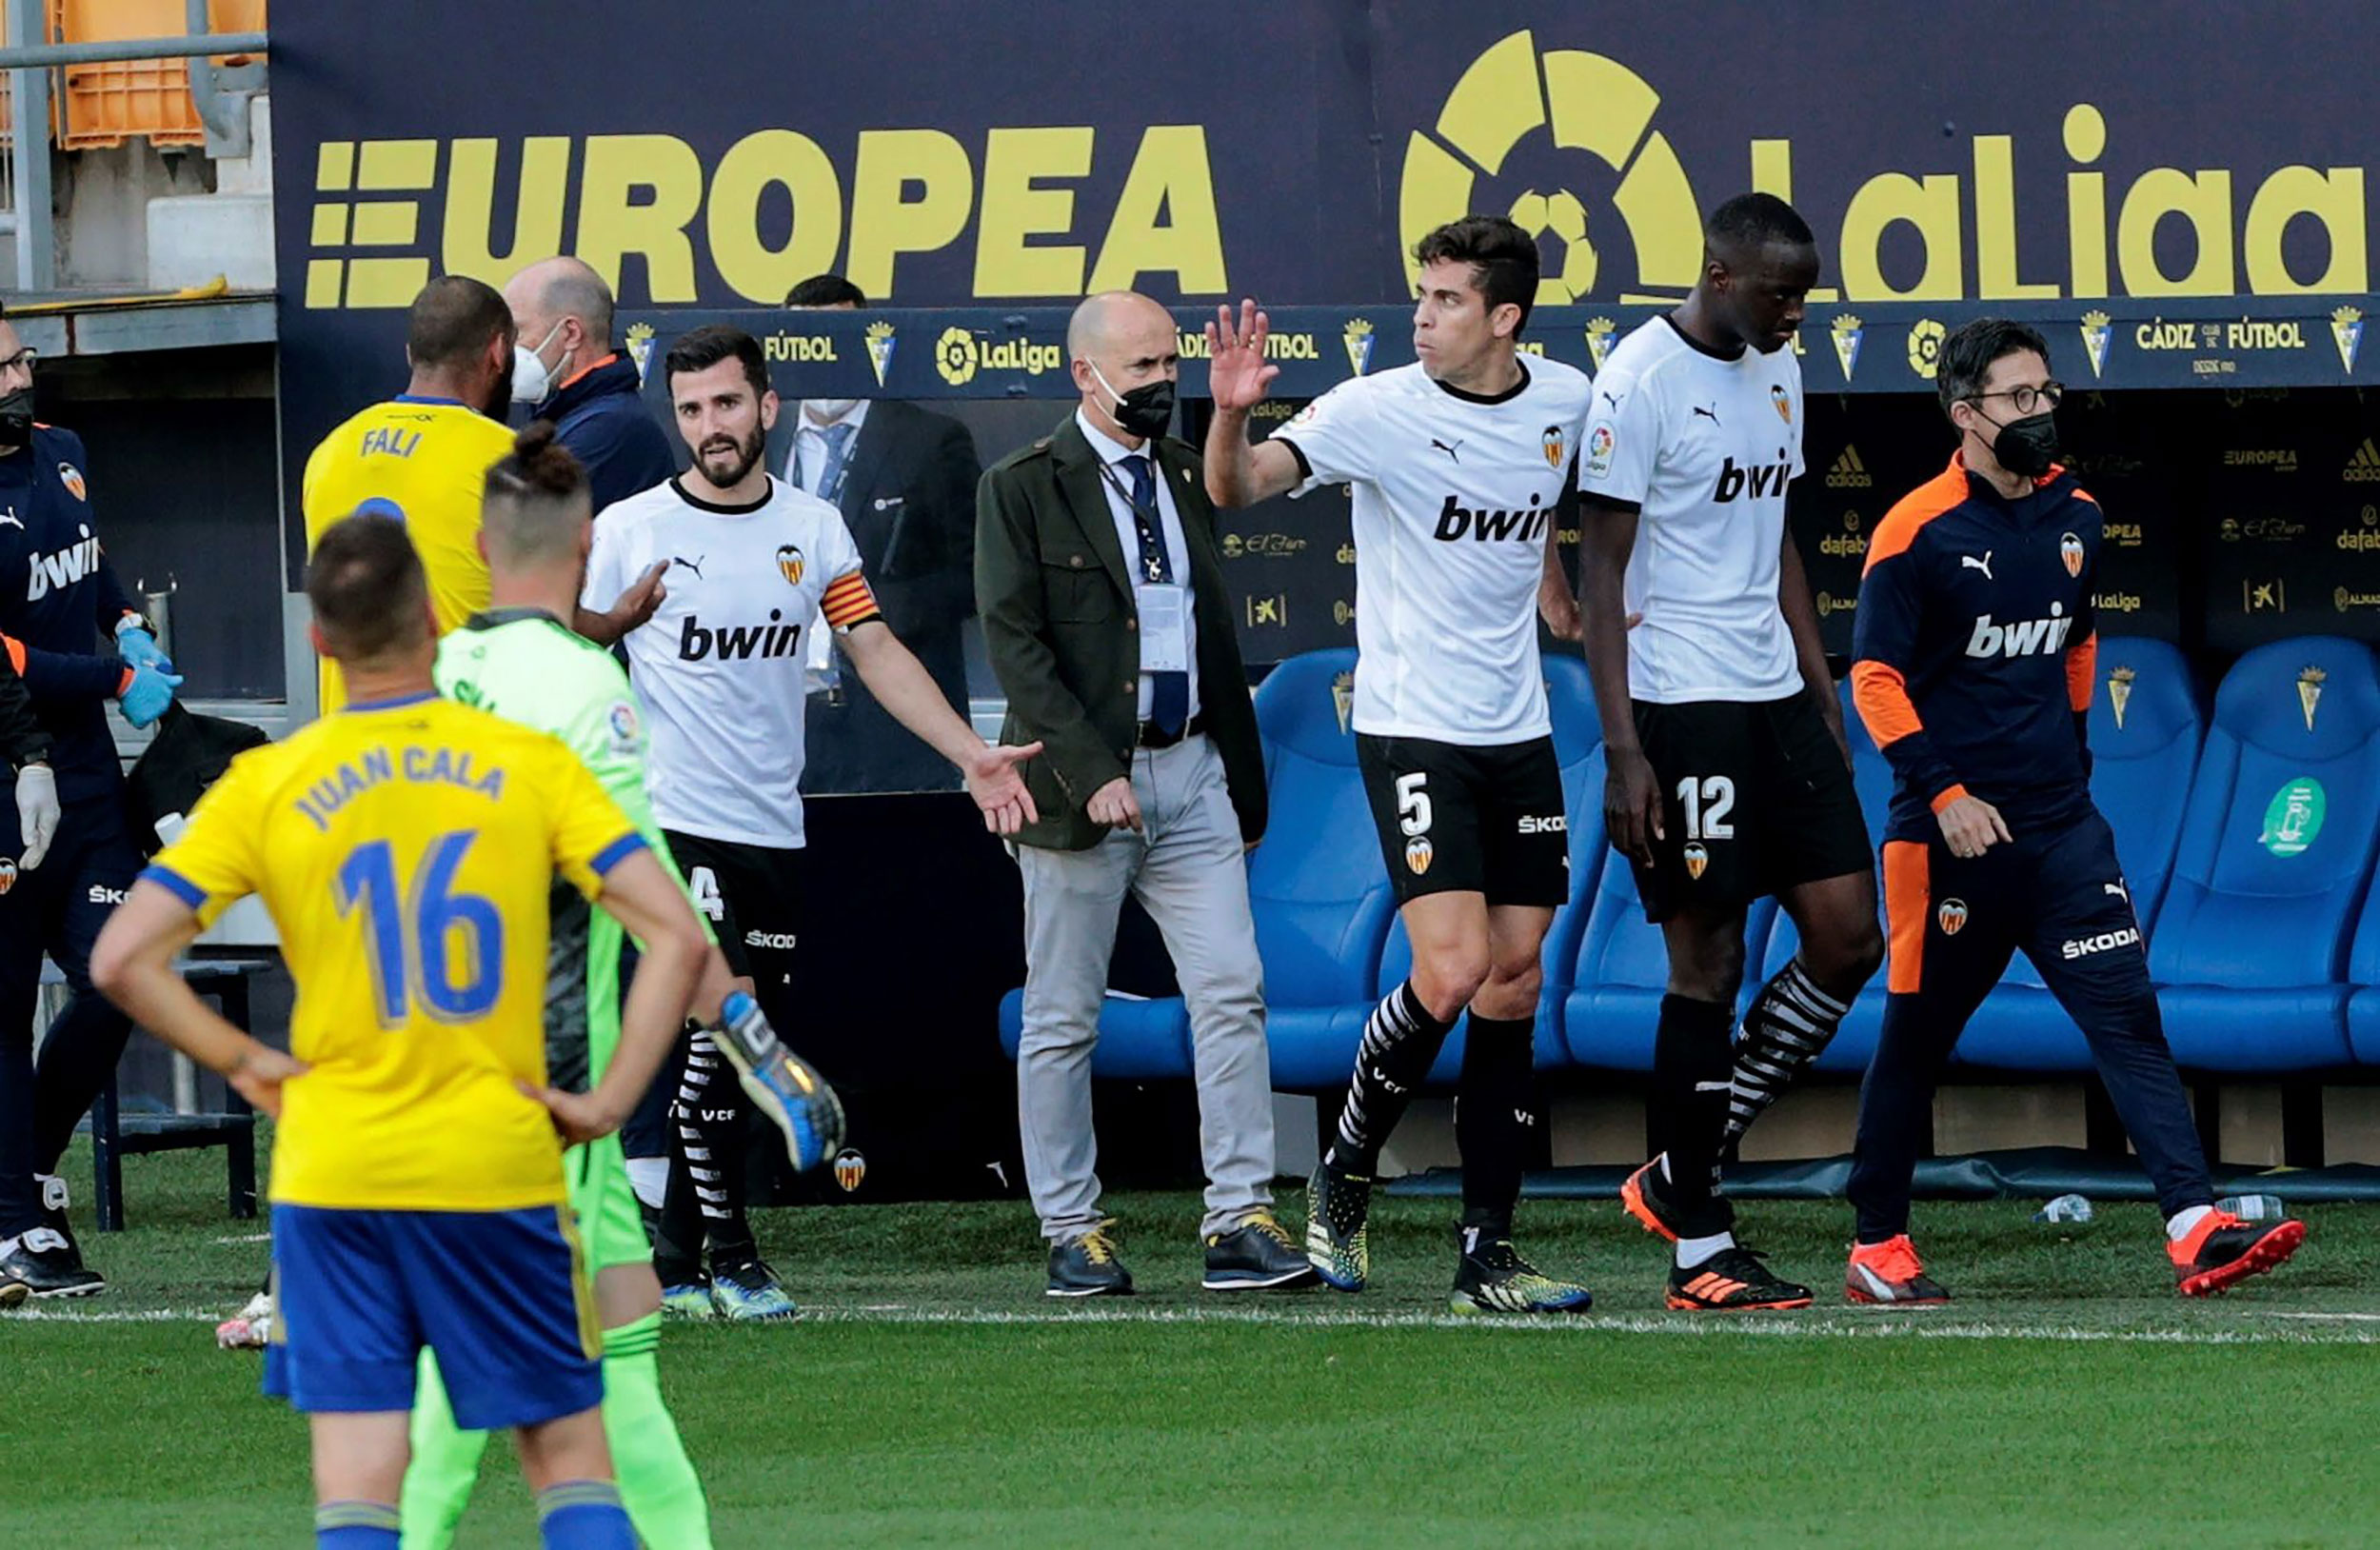 La Liga match between Valencia and Cádiz suspended following incident of alleged racist abuse